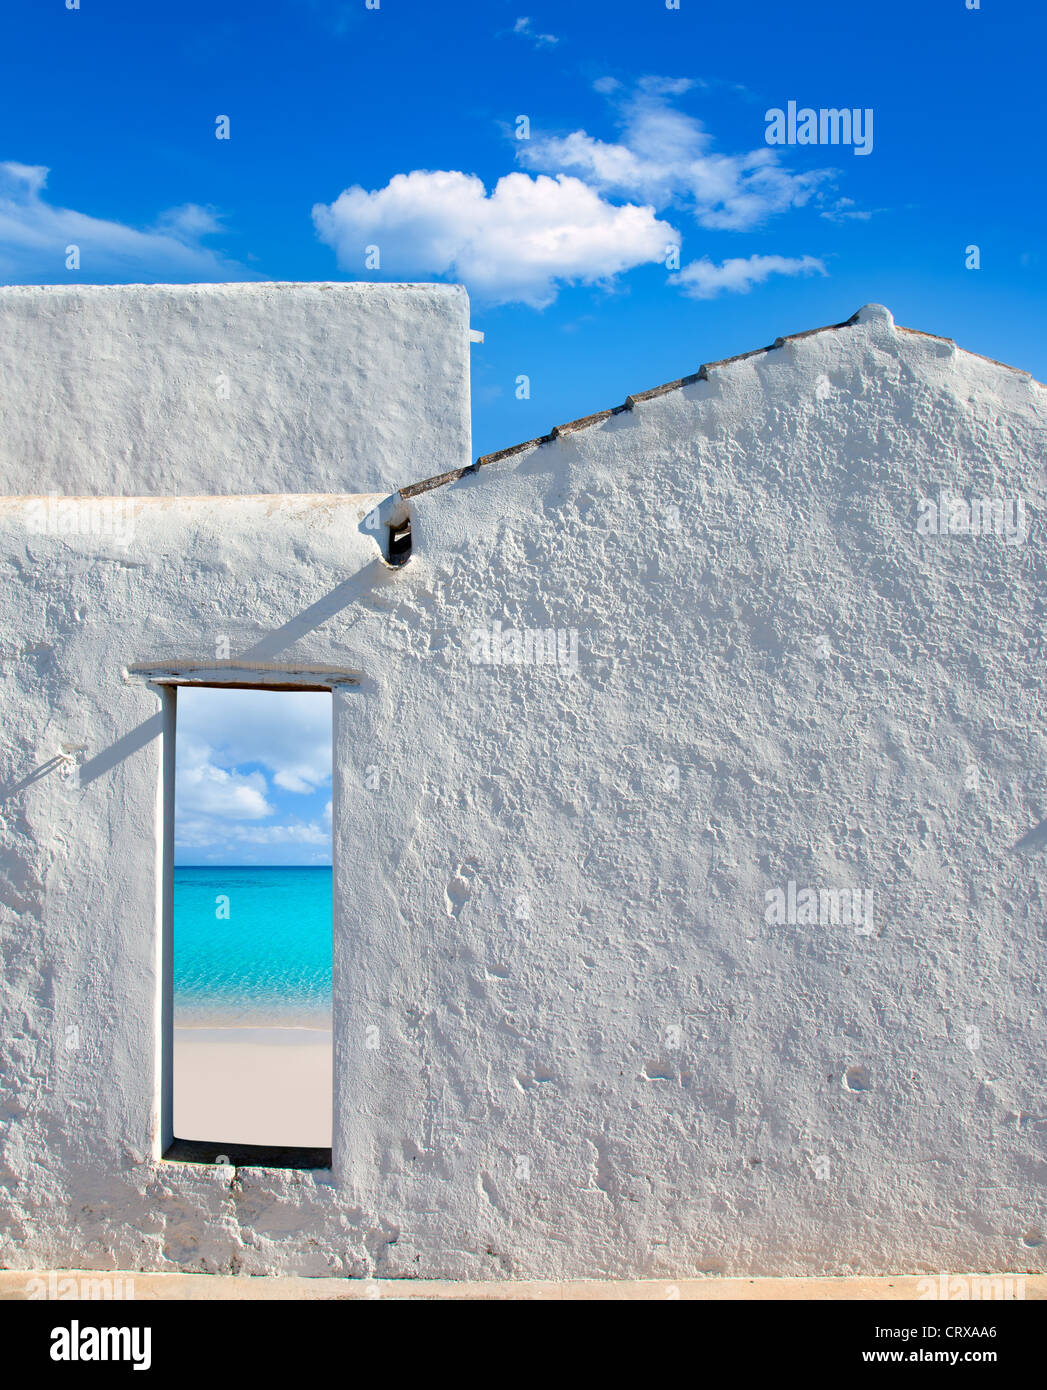 Balearic islands idyllic turquoise beach view through whitewashed house open door Stock Photo